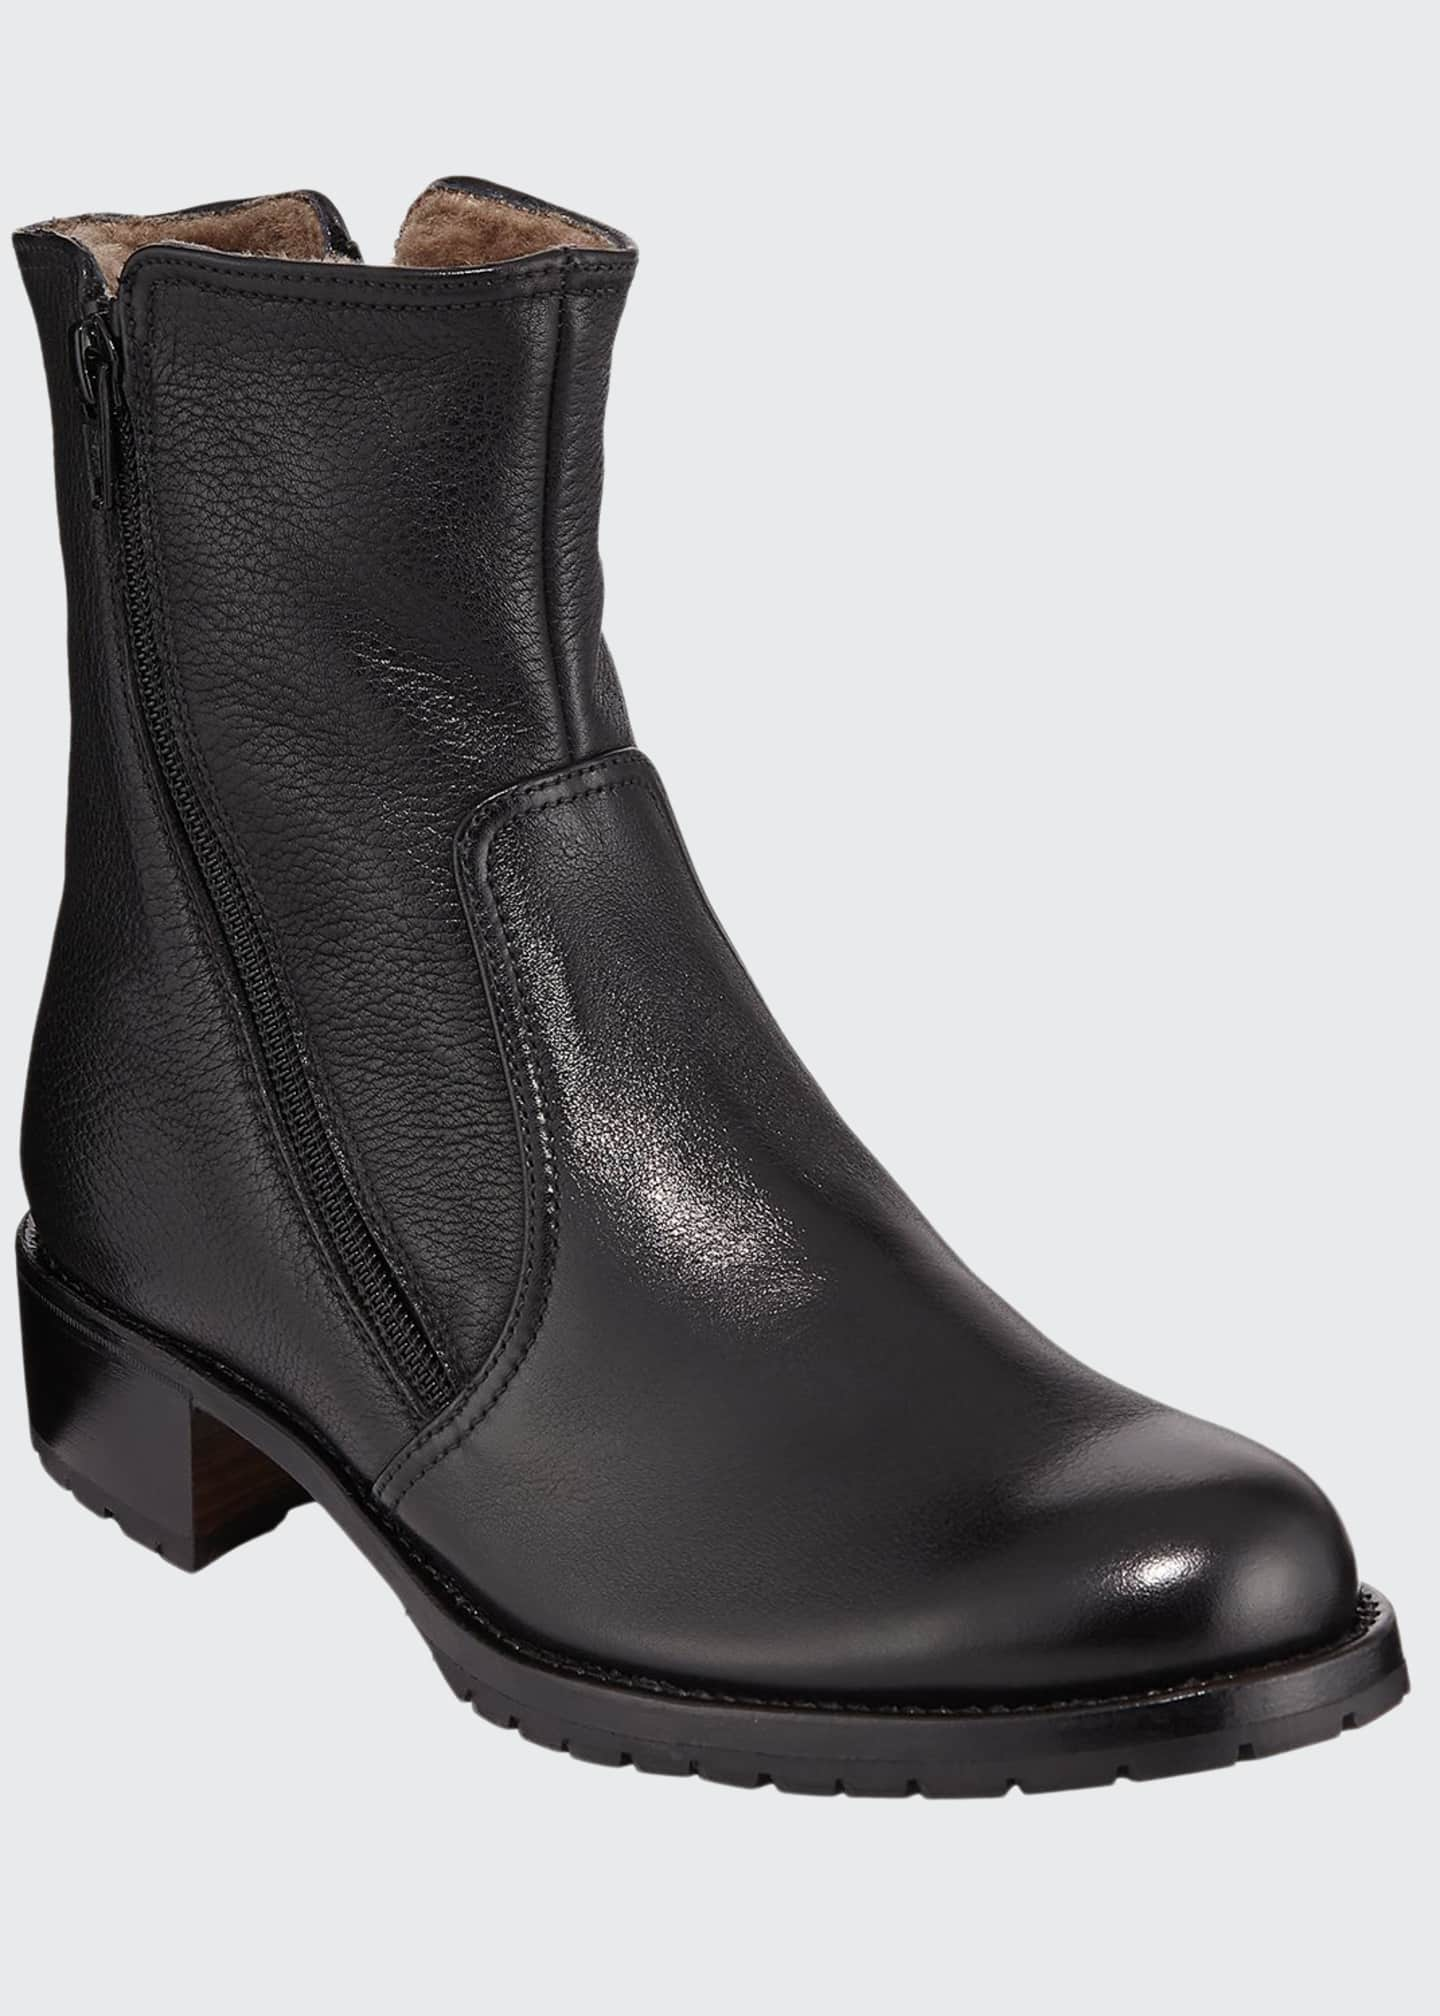 Gravati Two Zipper Leather Booties